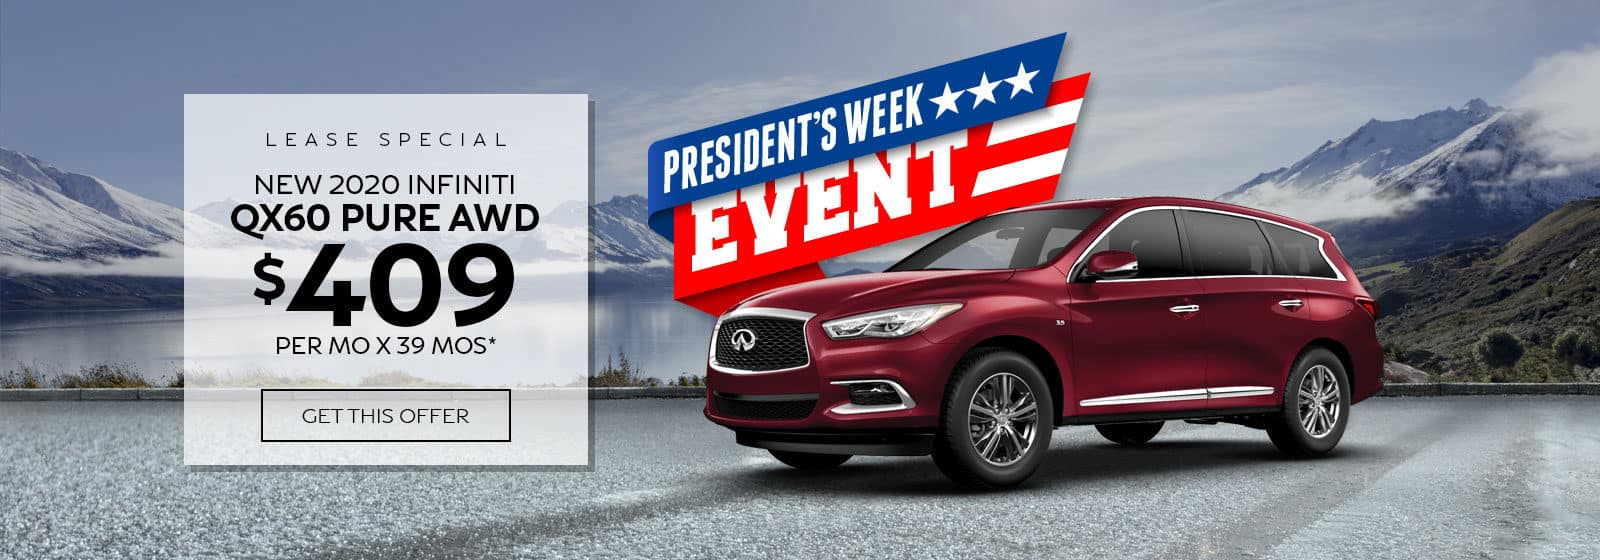 INFINITI QX60 lease special